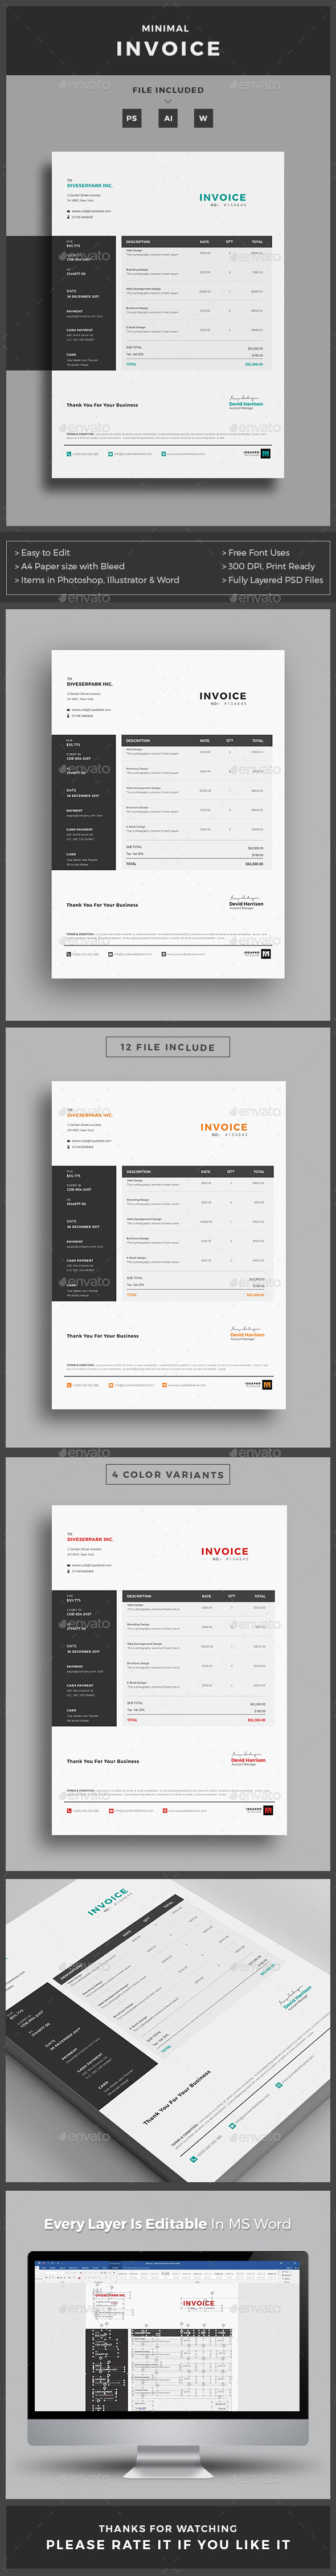 GraphicRiver Invoice 20756936